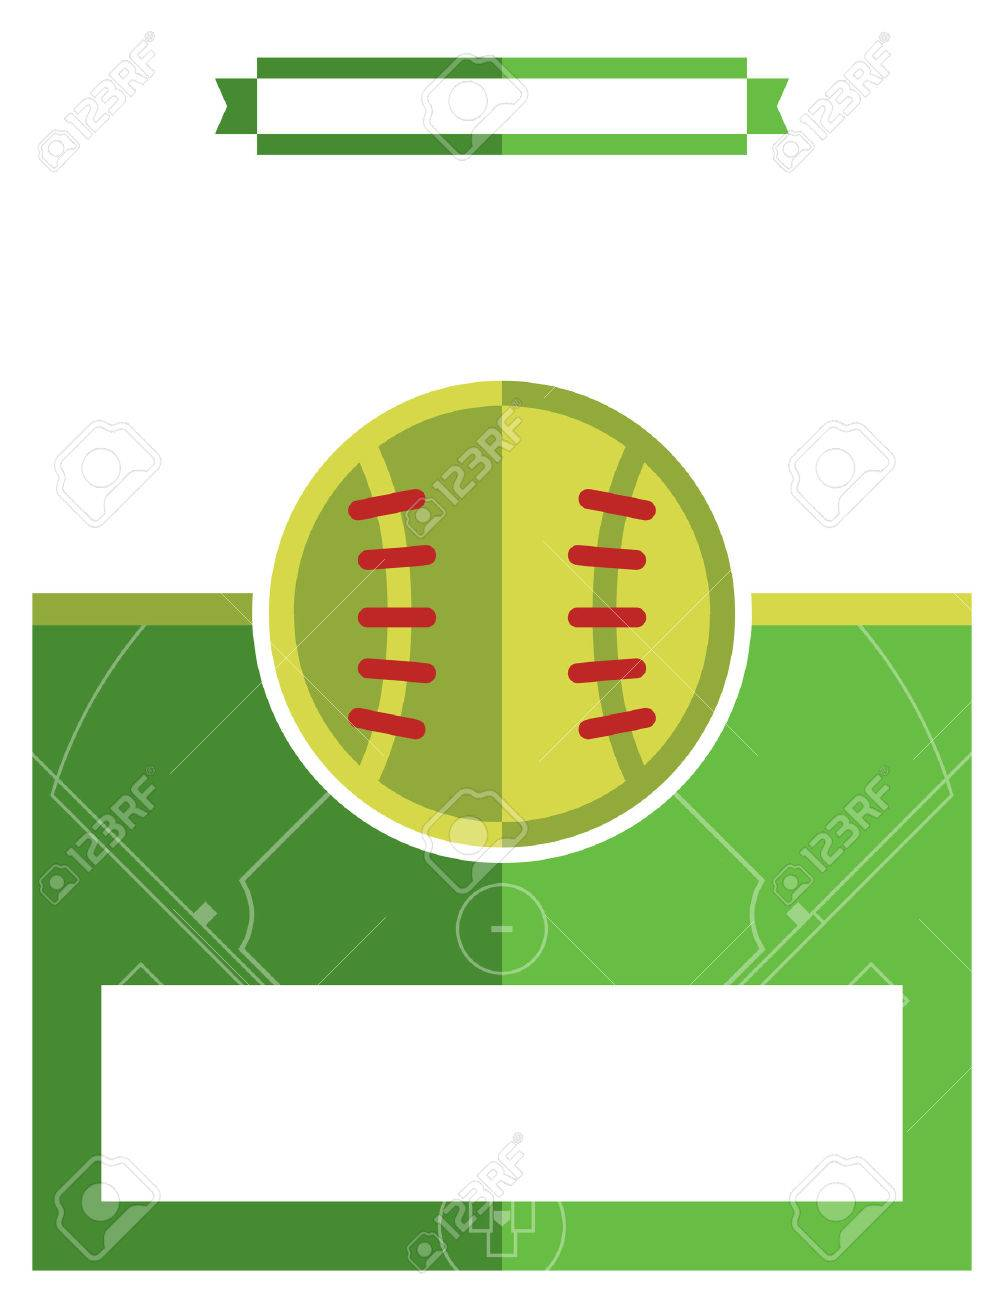 a template flyer background for a softball game vector eps 10 available stock vector